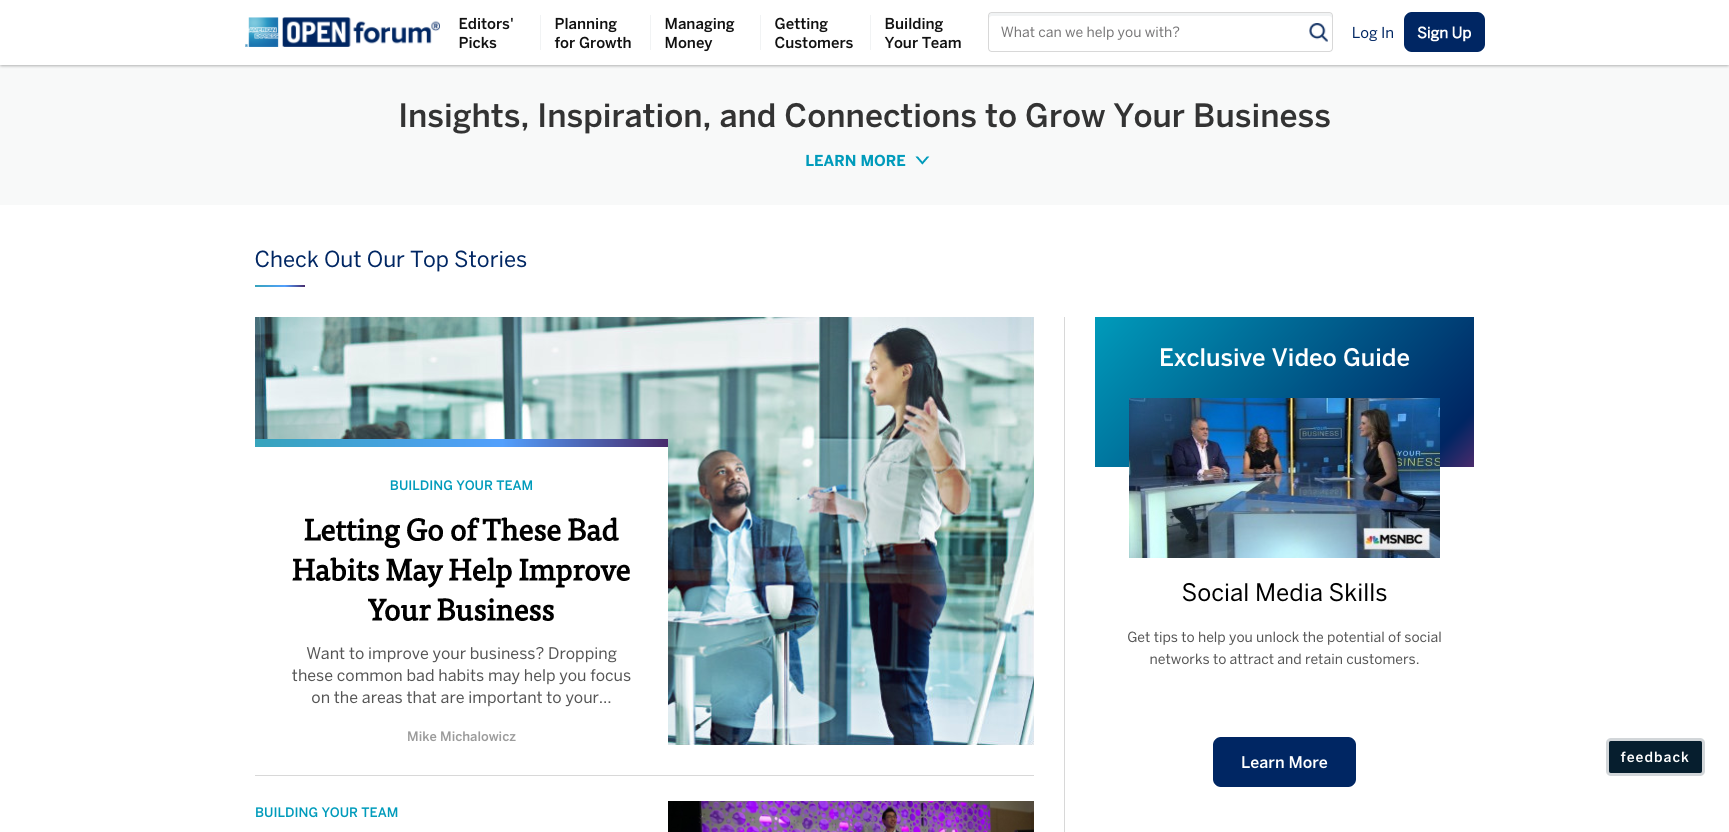 Amex OPEN forum content marketing example